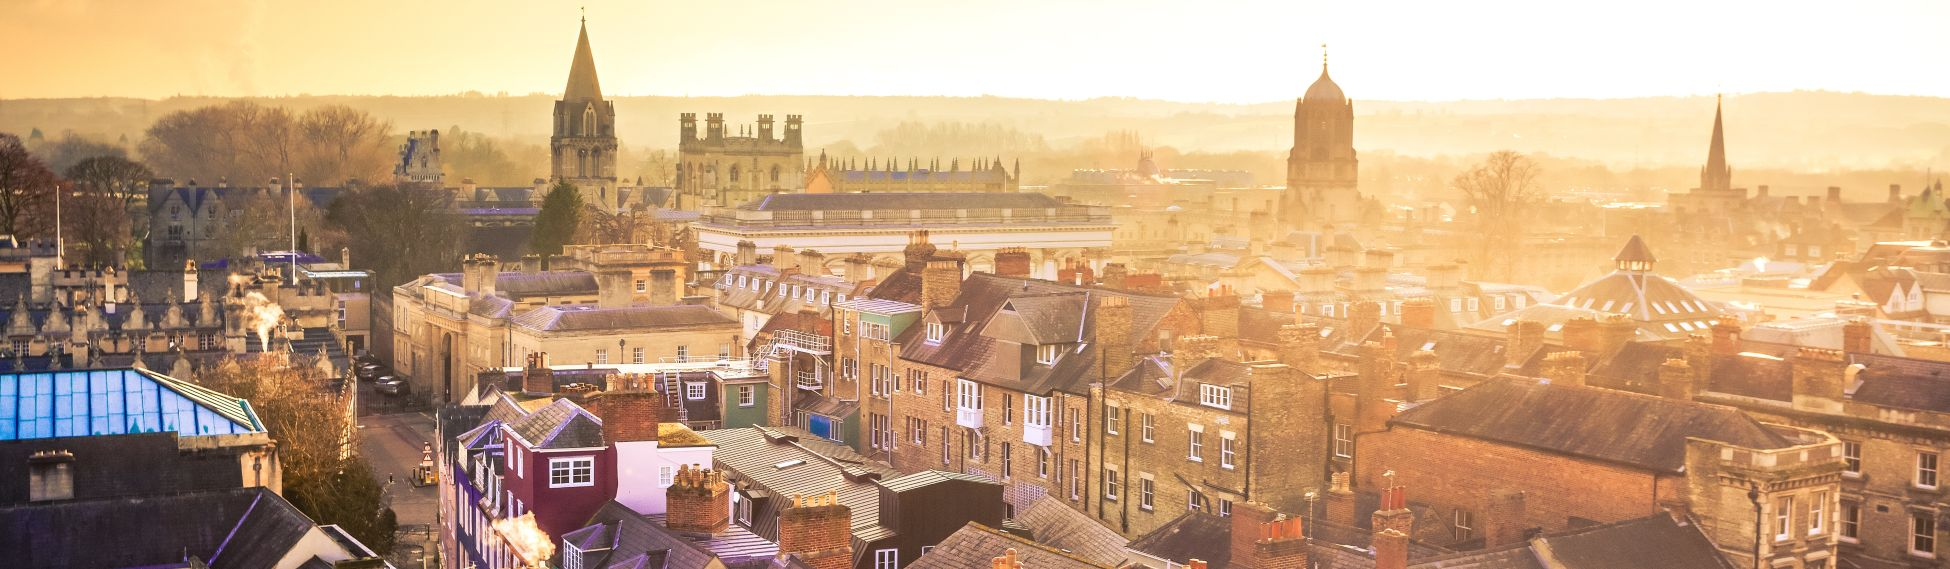 City of Oxford from Above at Sunset, United Kingdom